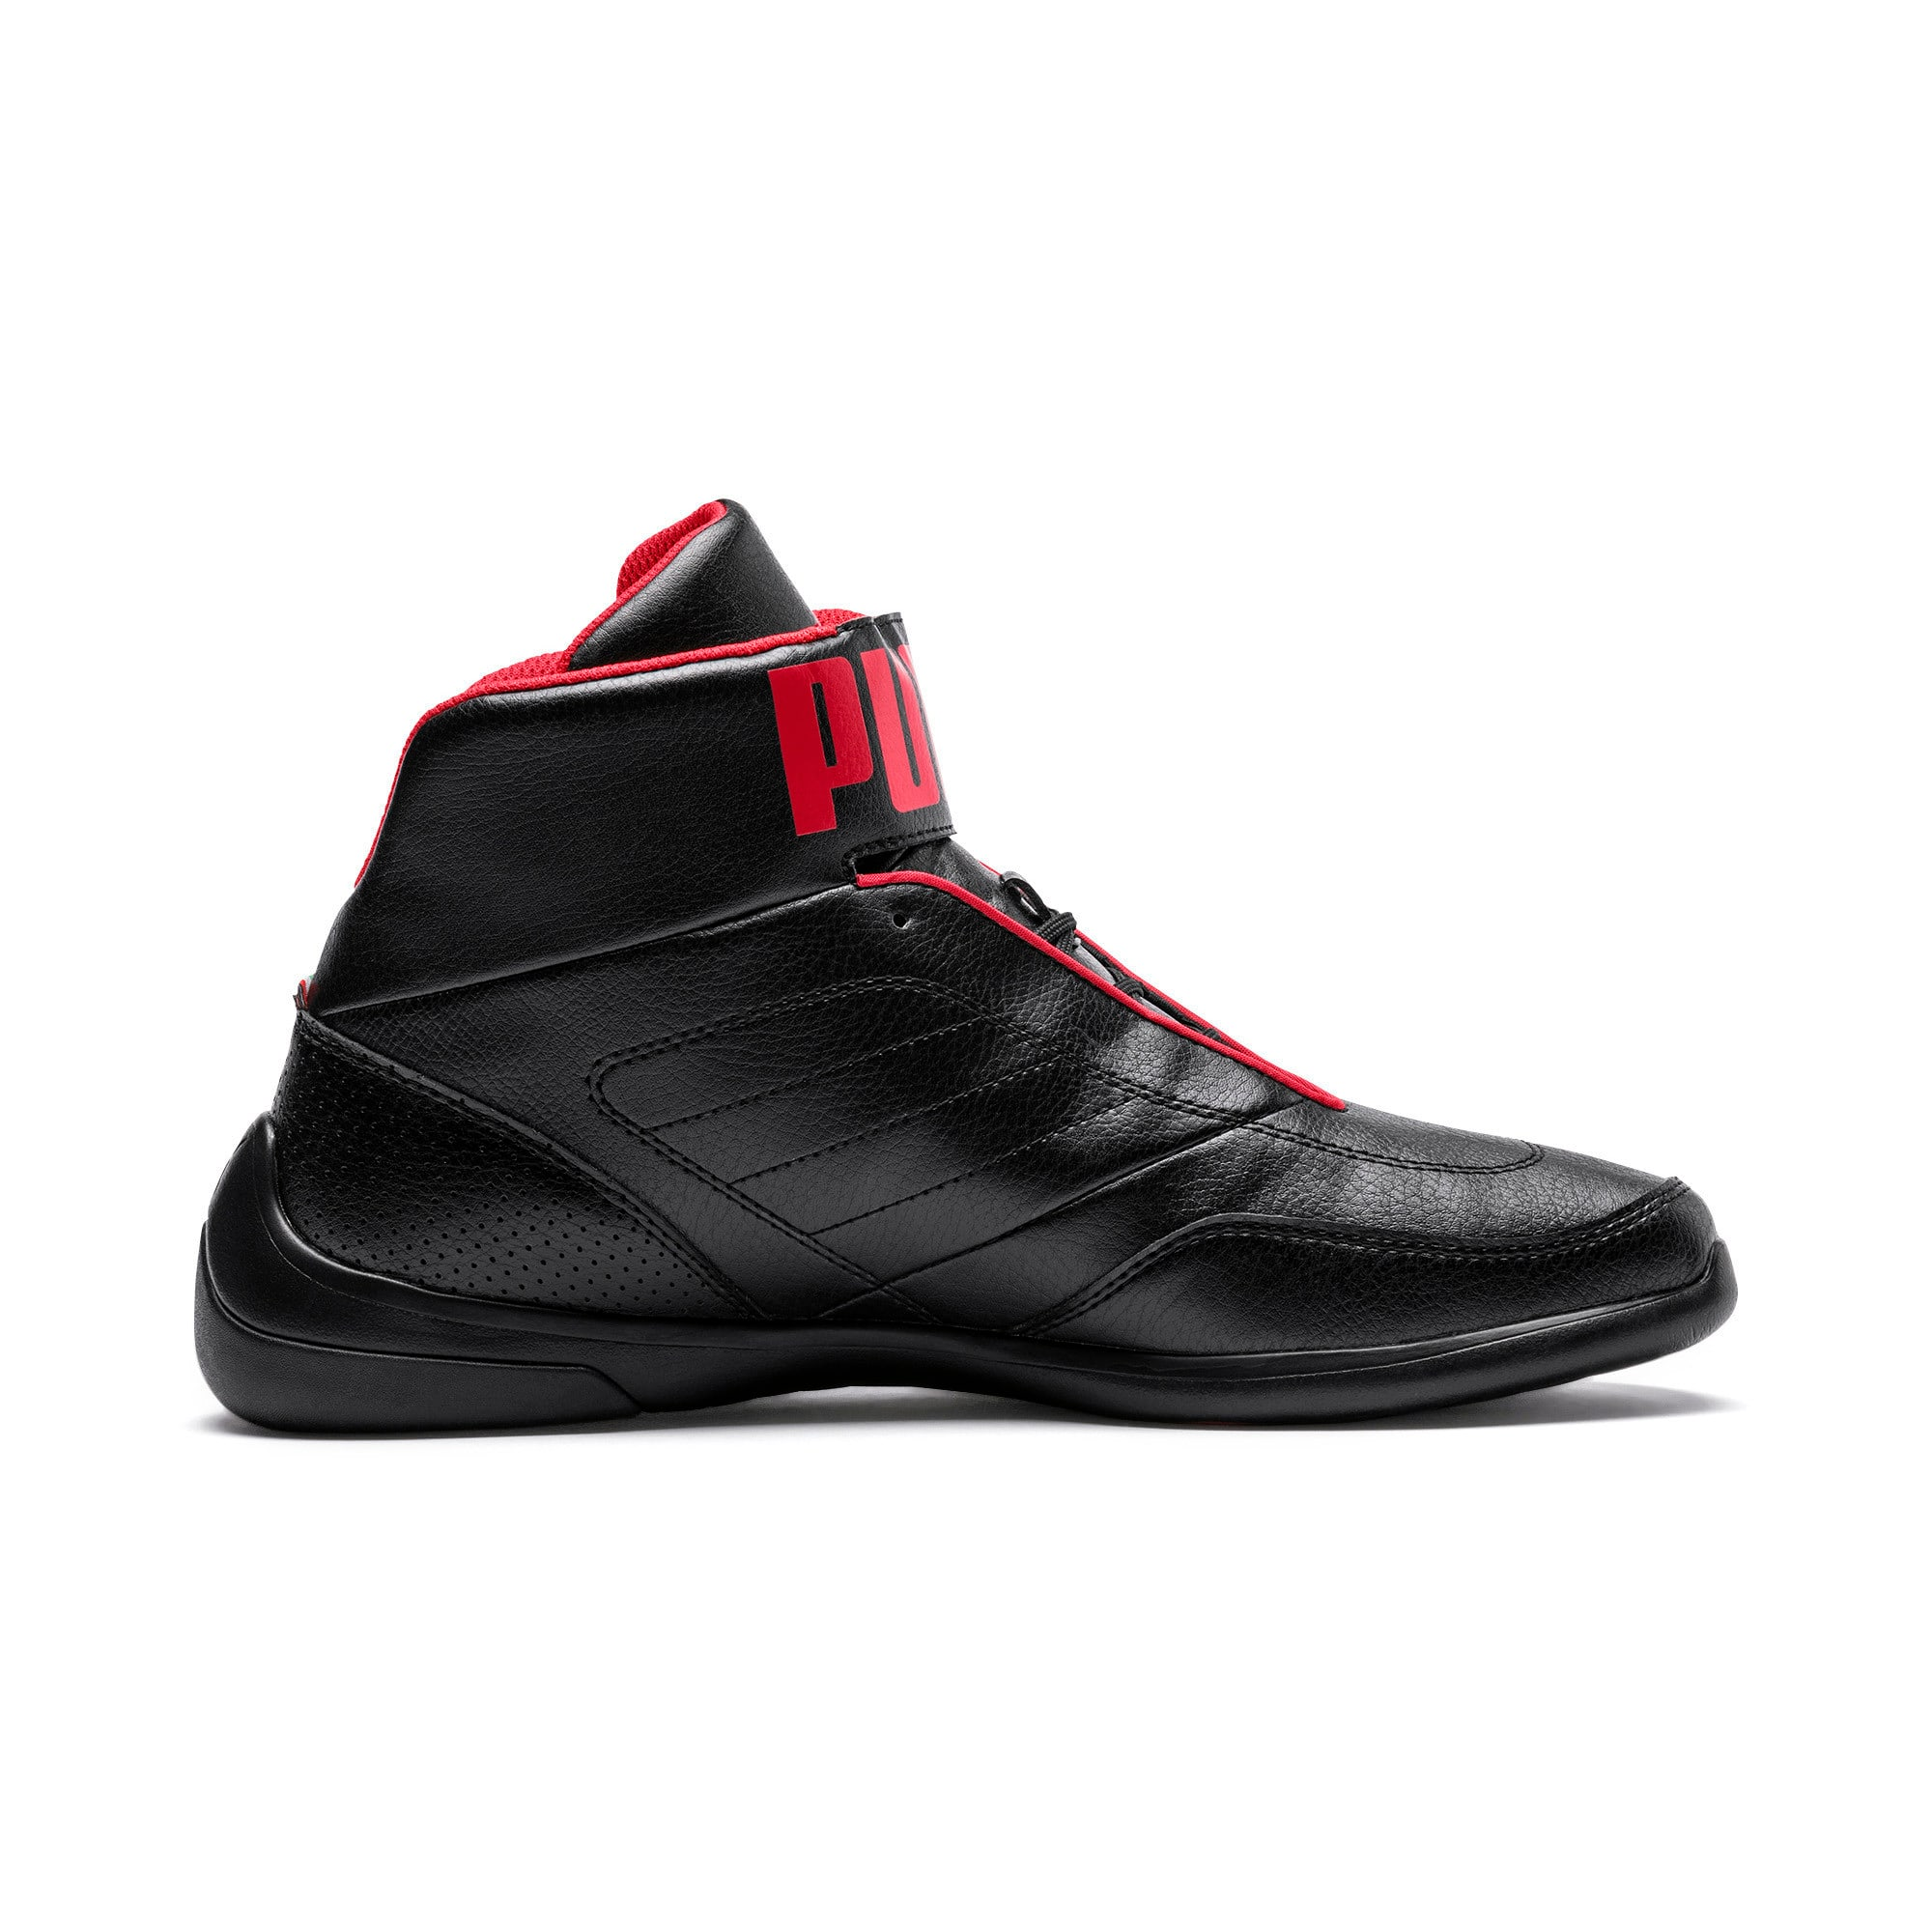 Thumbnail 5 of Scuderia Ferrari Kart Cat Mid III Hi Top Shoes, Puma Black-Puma White, medium